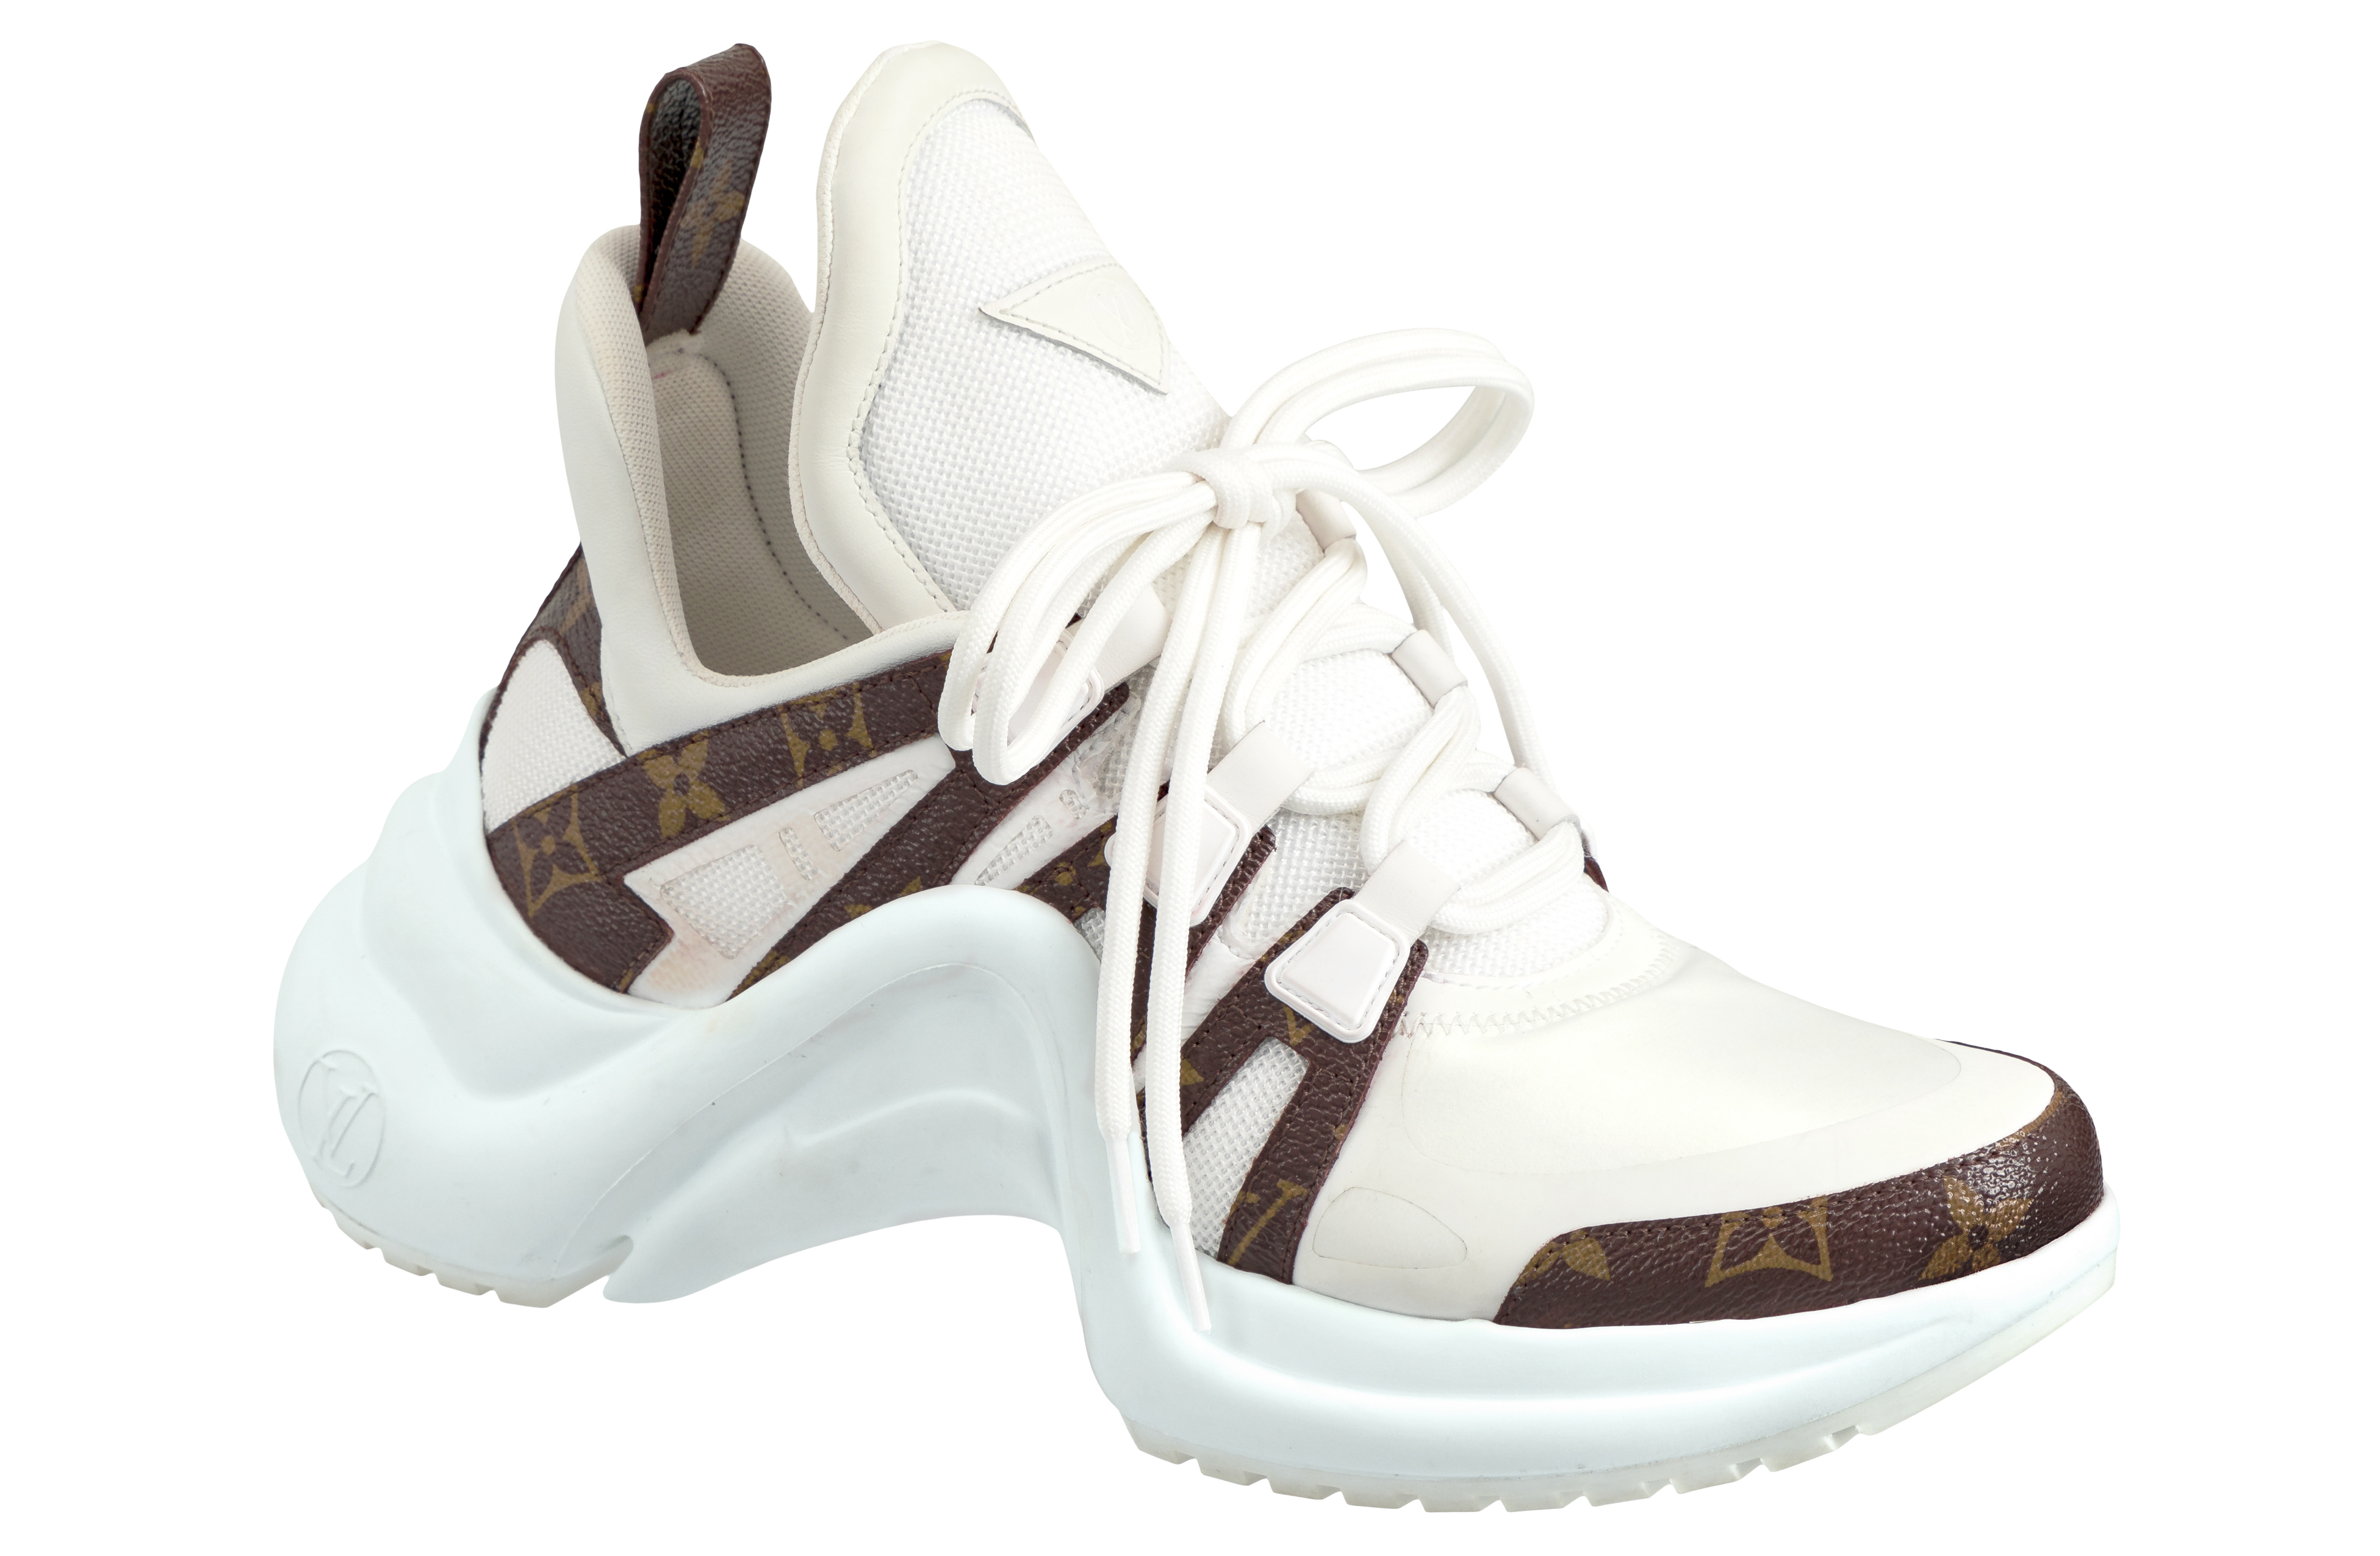 Louis Vuitton Brings Us the Next Great High Fashion Sneaker   GARAGE The Archlight  Image courtesy of Louis Vuitton